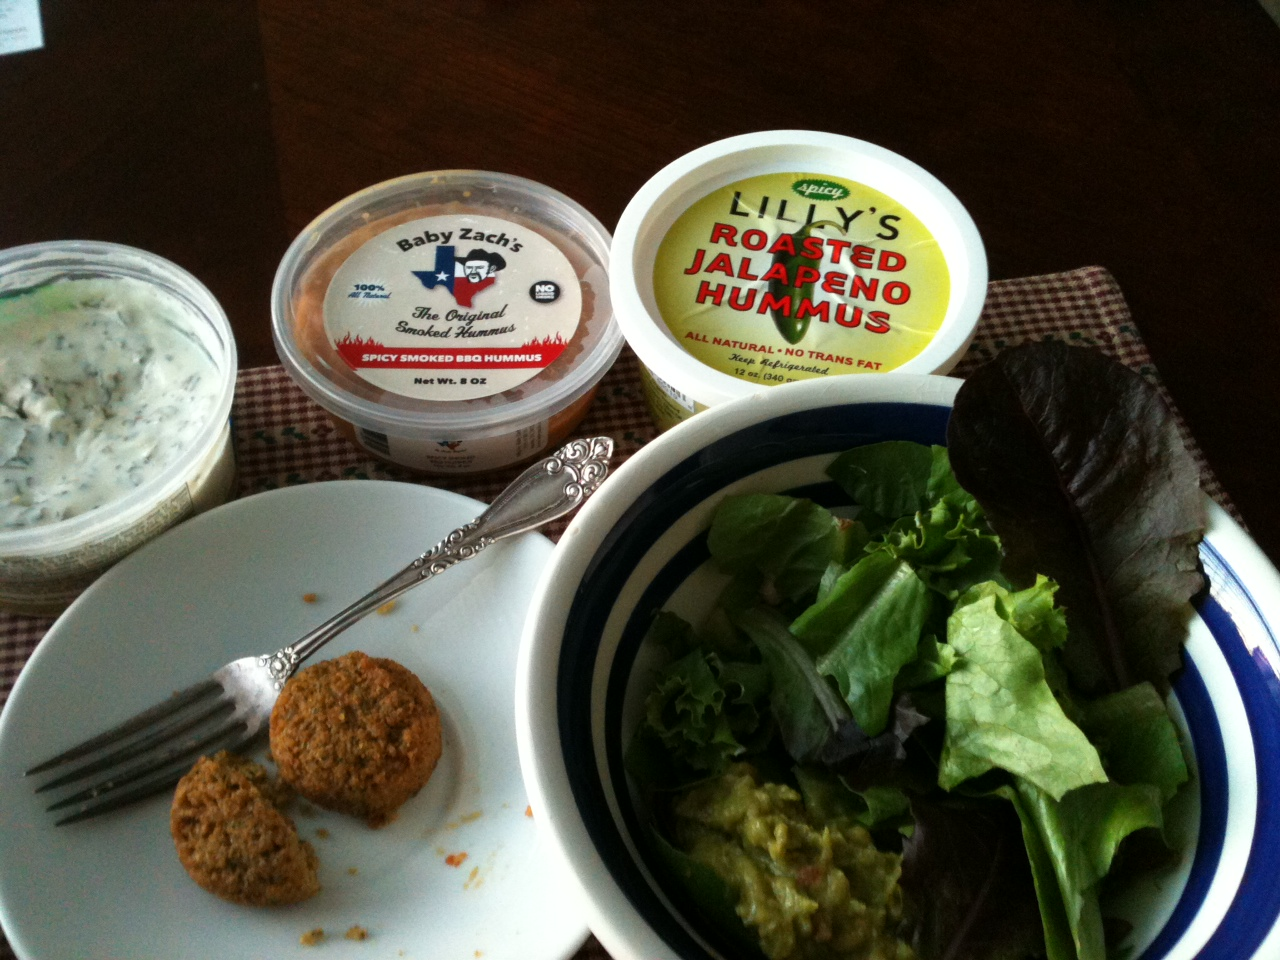 This is sooo Texas - Spicy Smoked BBQ & Roasted Jalapeño Hummus (my dinner!!) YUM :D !